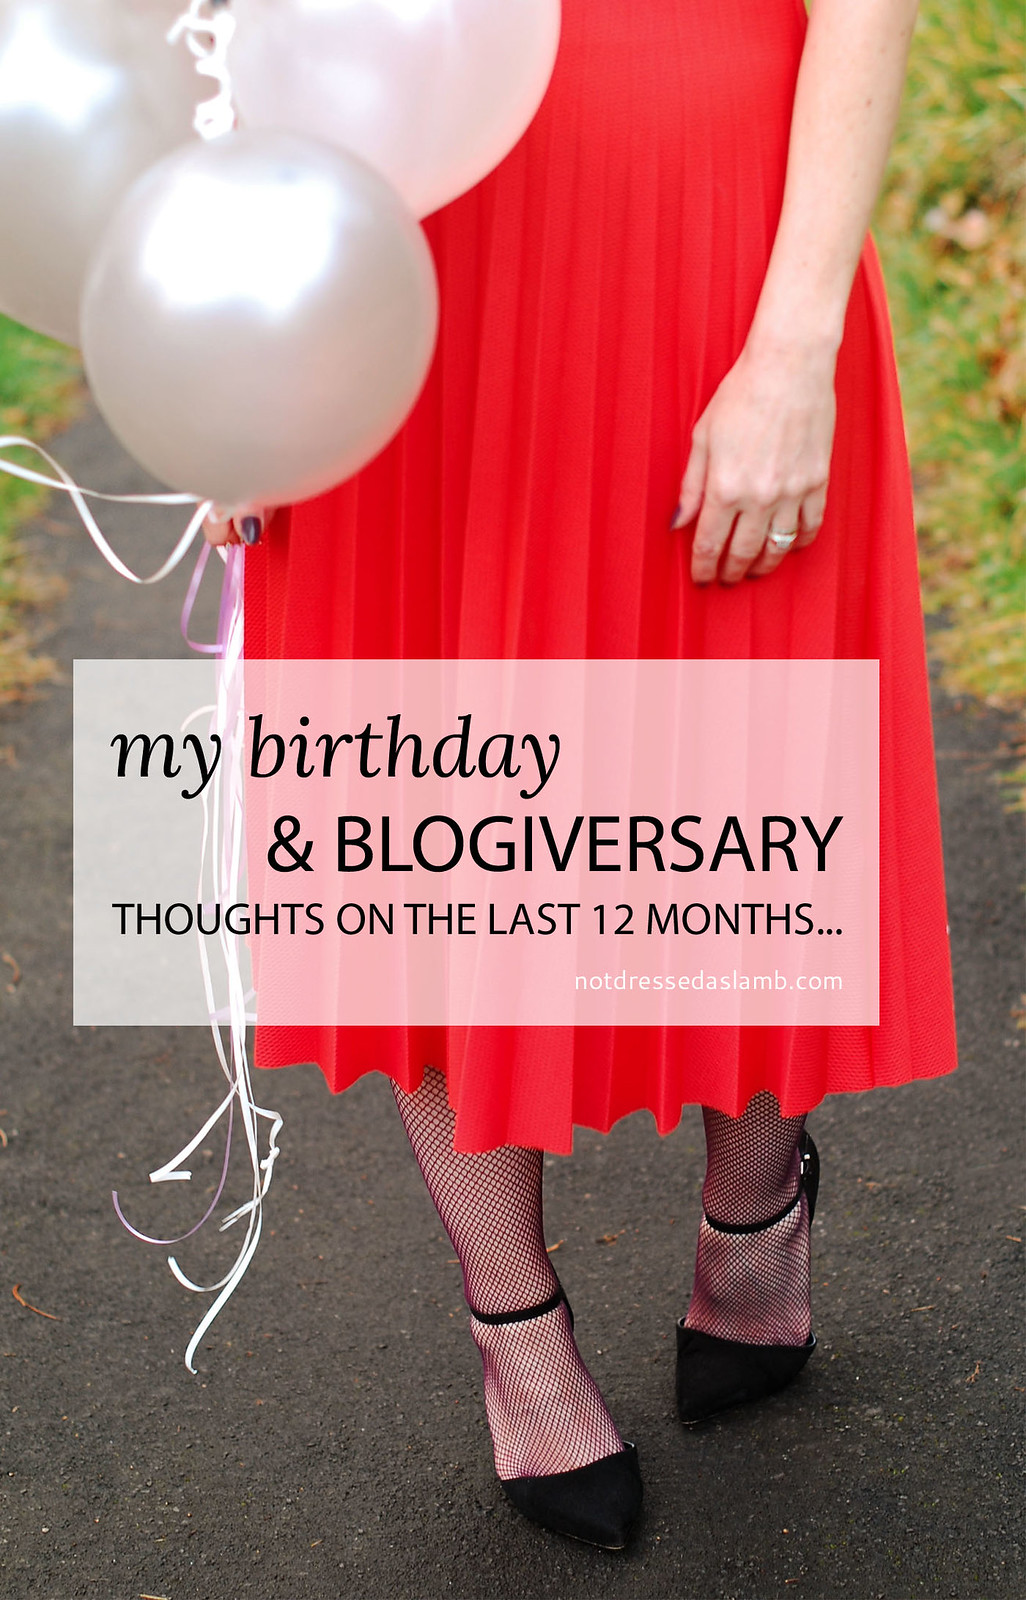 My Birthday and 6th Blogiversary | What a Difference a Year Makes | Not Dressed As Lamb, over 40 style